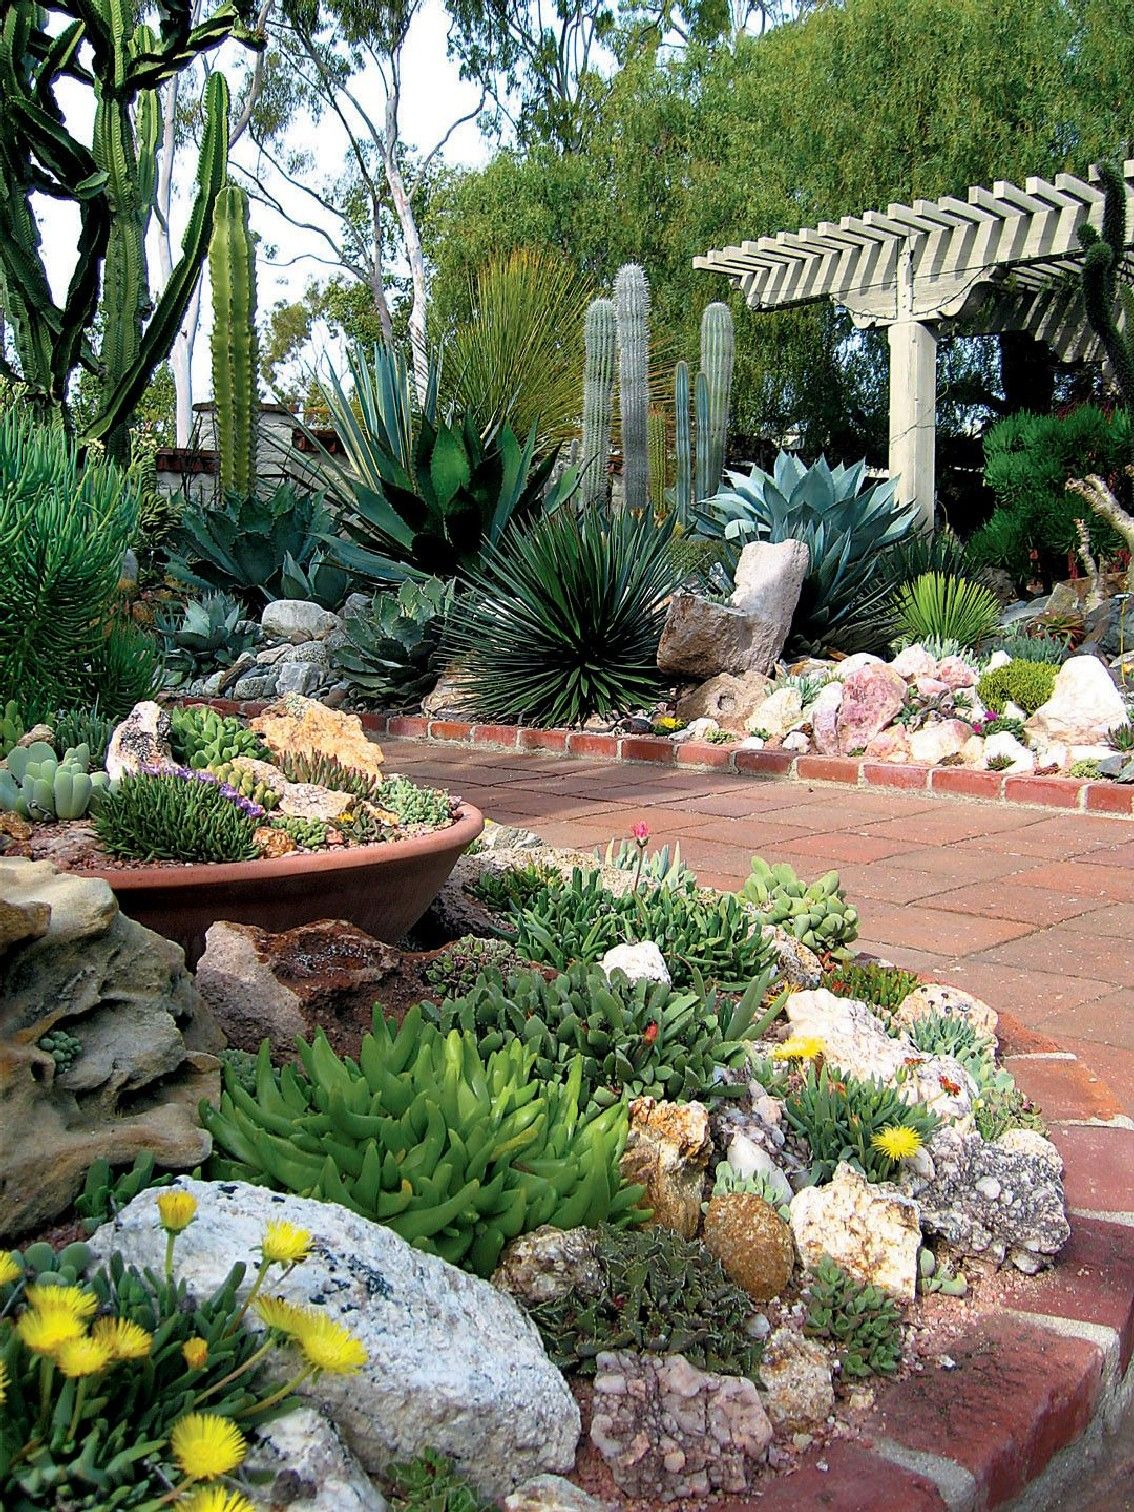 Amazing Landscaping Ideas For Small Budgets: 35 Amazing Beautiful Garden Landscaping Ideas With